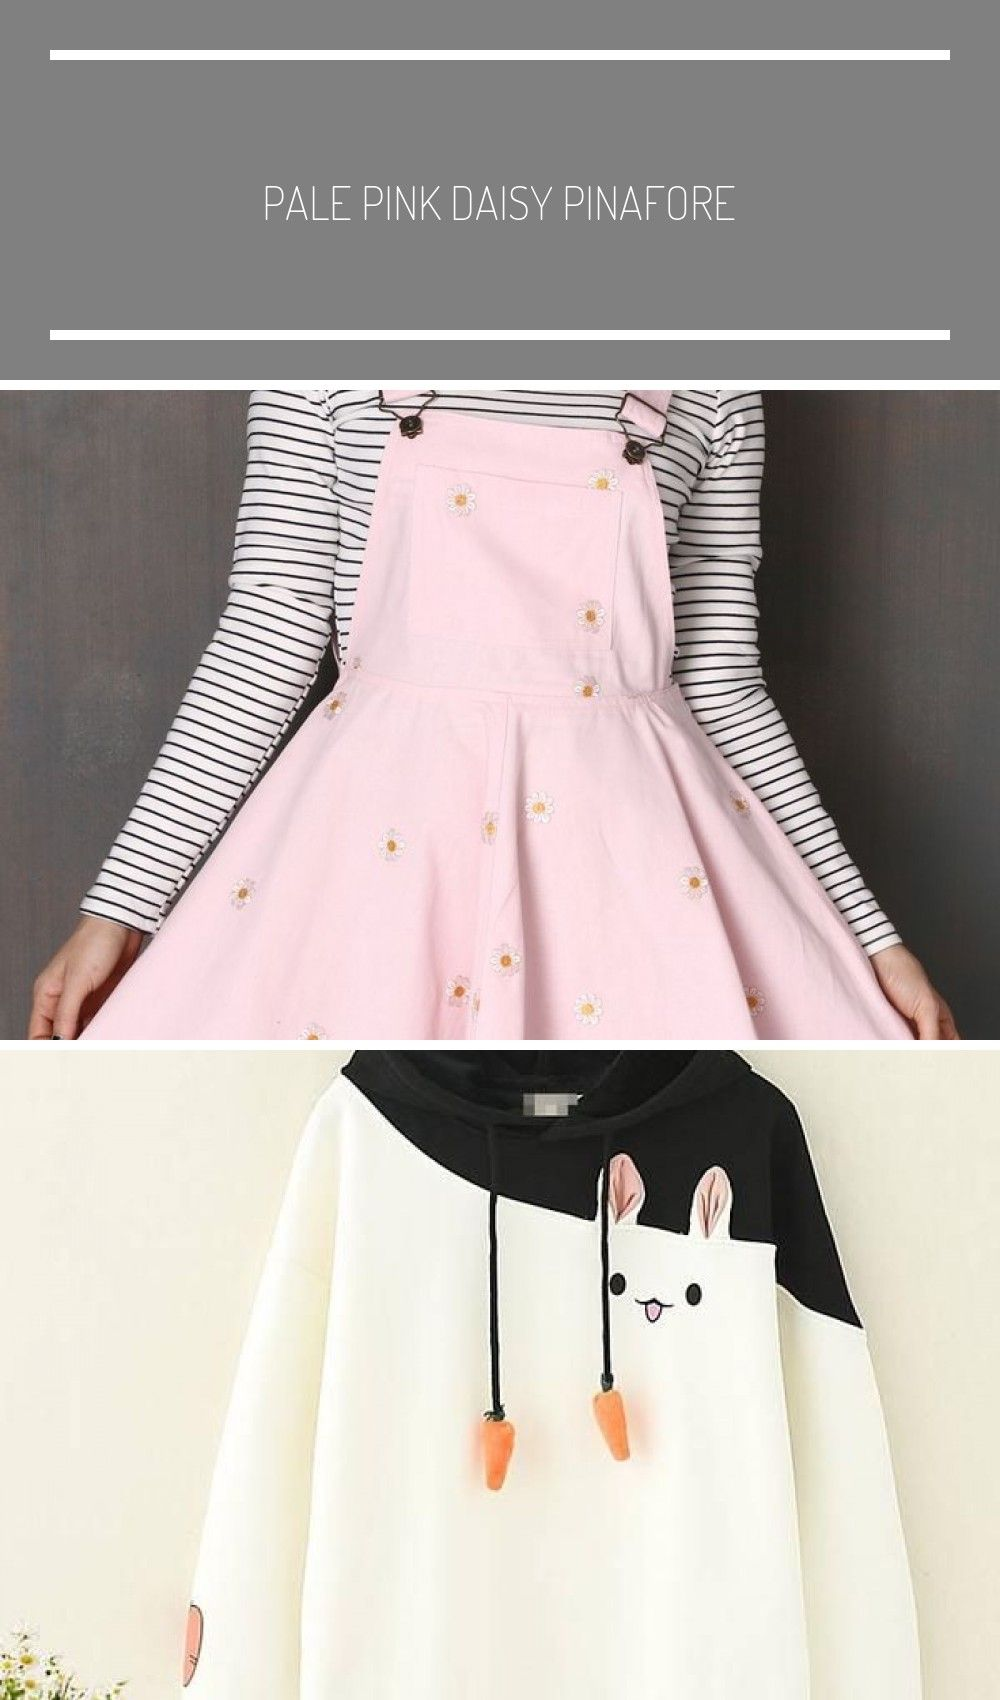 Fashion clothes Pale Pink Daisy Pinafore